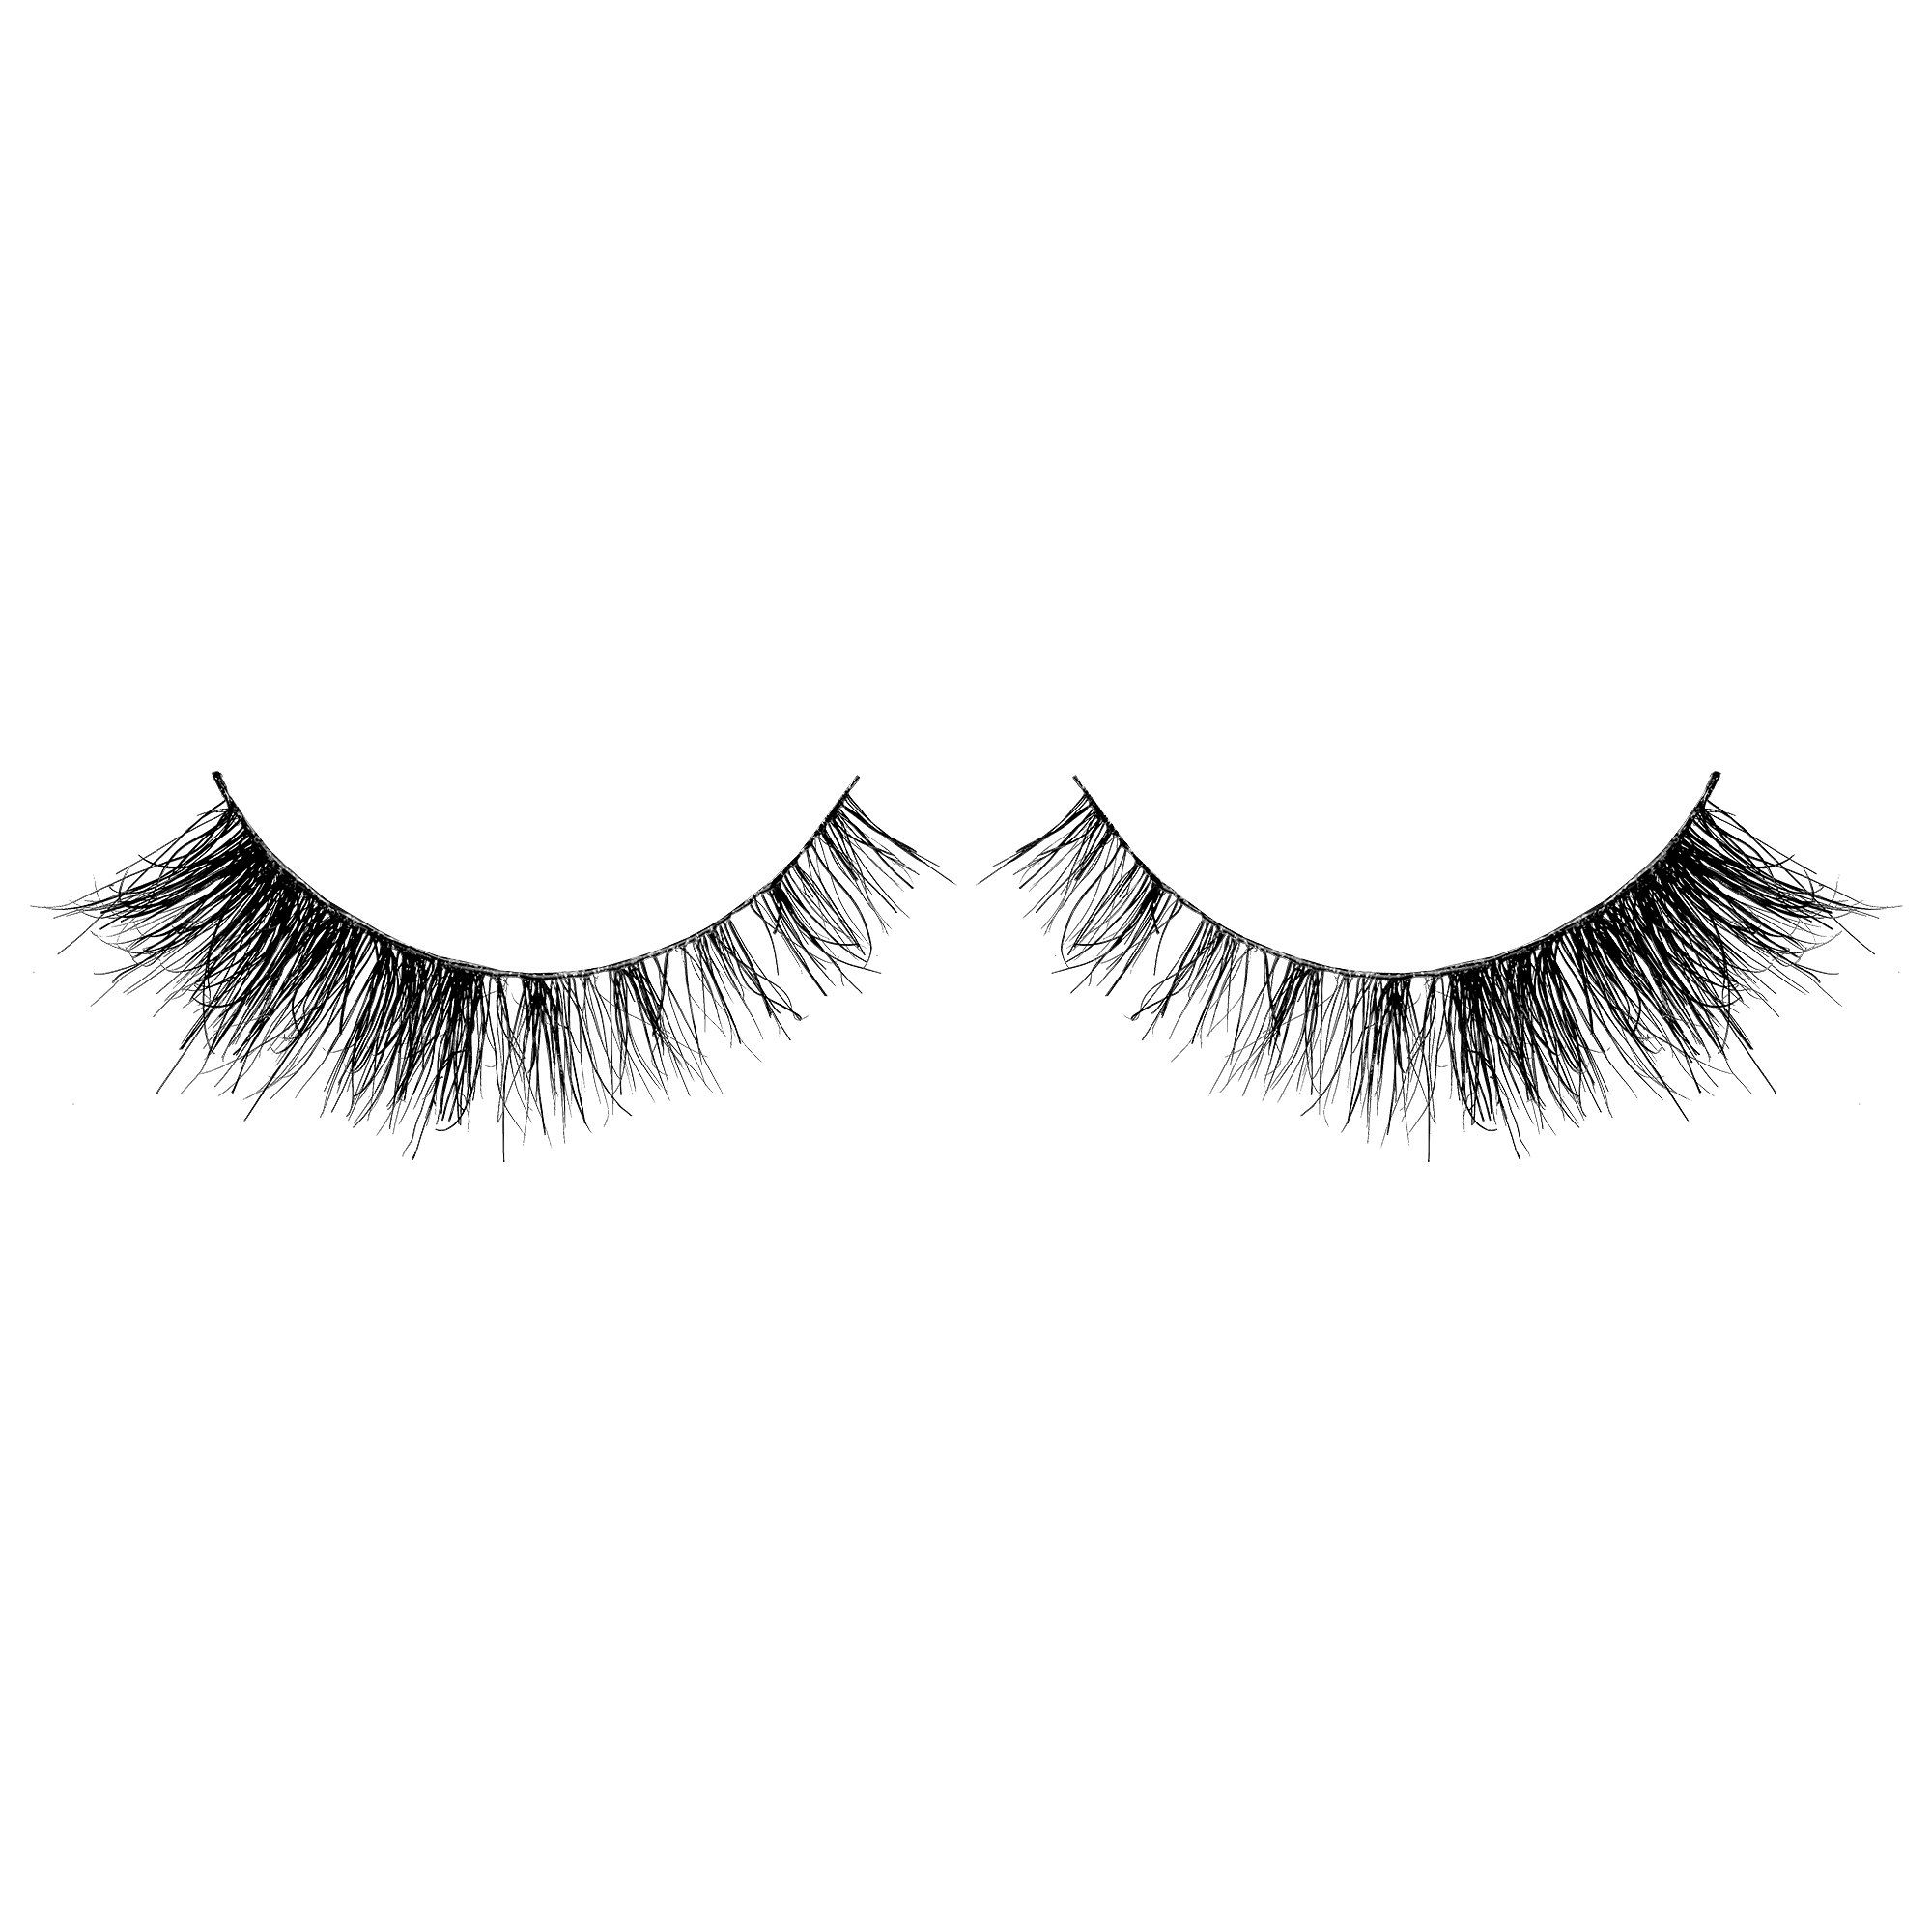 bec6938fadc Shop SEPHORA COLLECTION's Luxe False Lash at Sephora. This set of  high-quality false lashes are made from soft natural hair fibers for a  natural look.